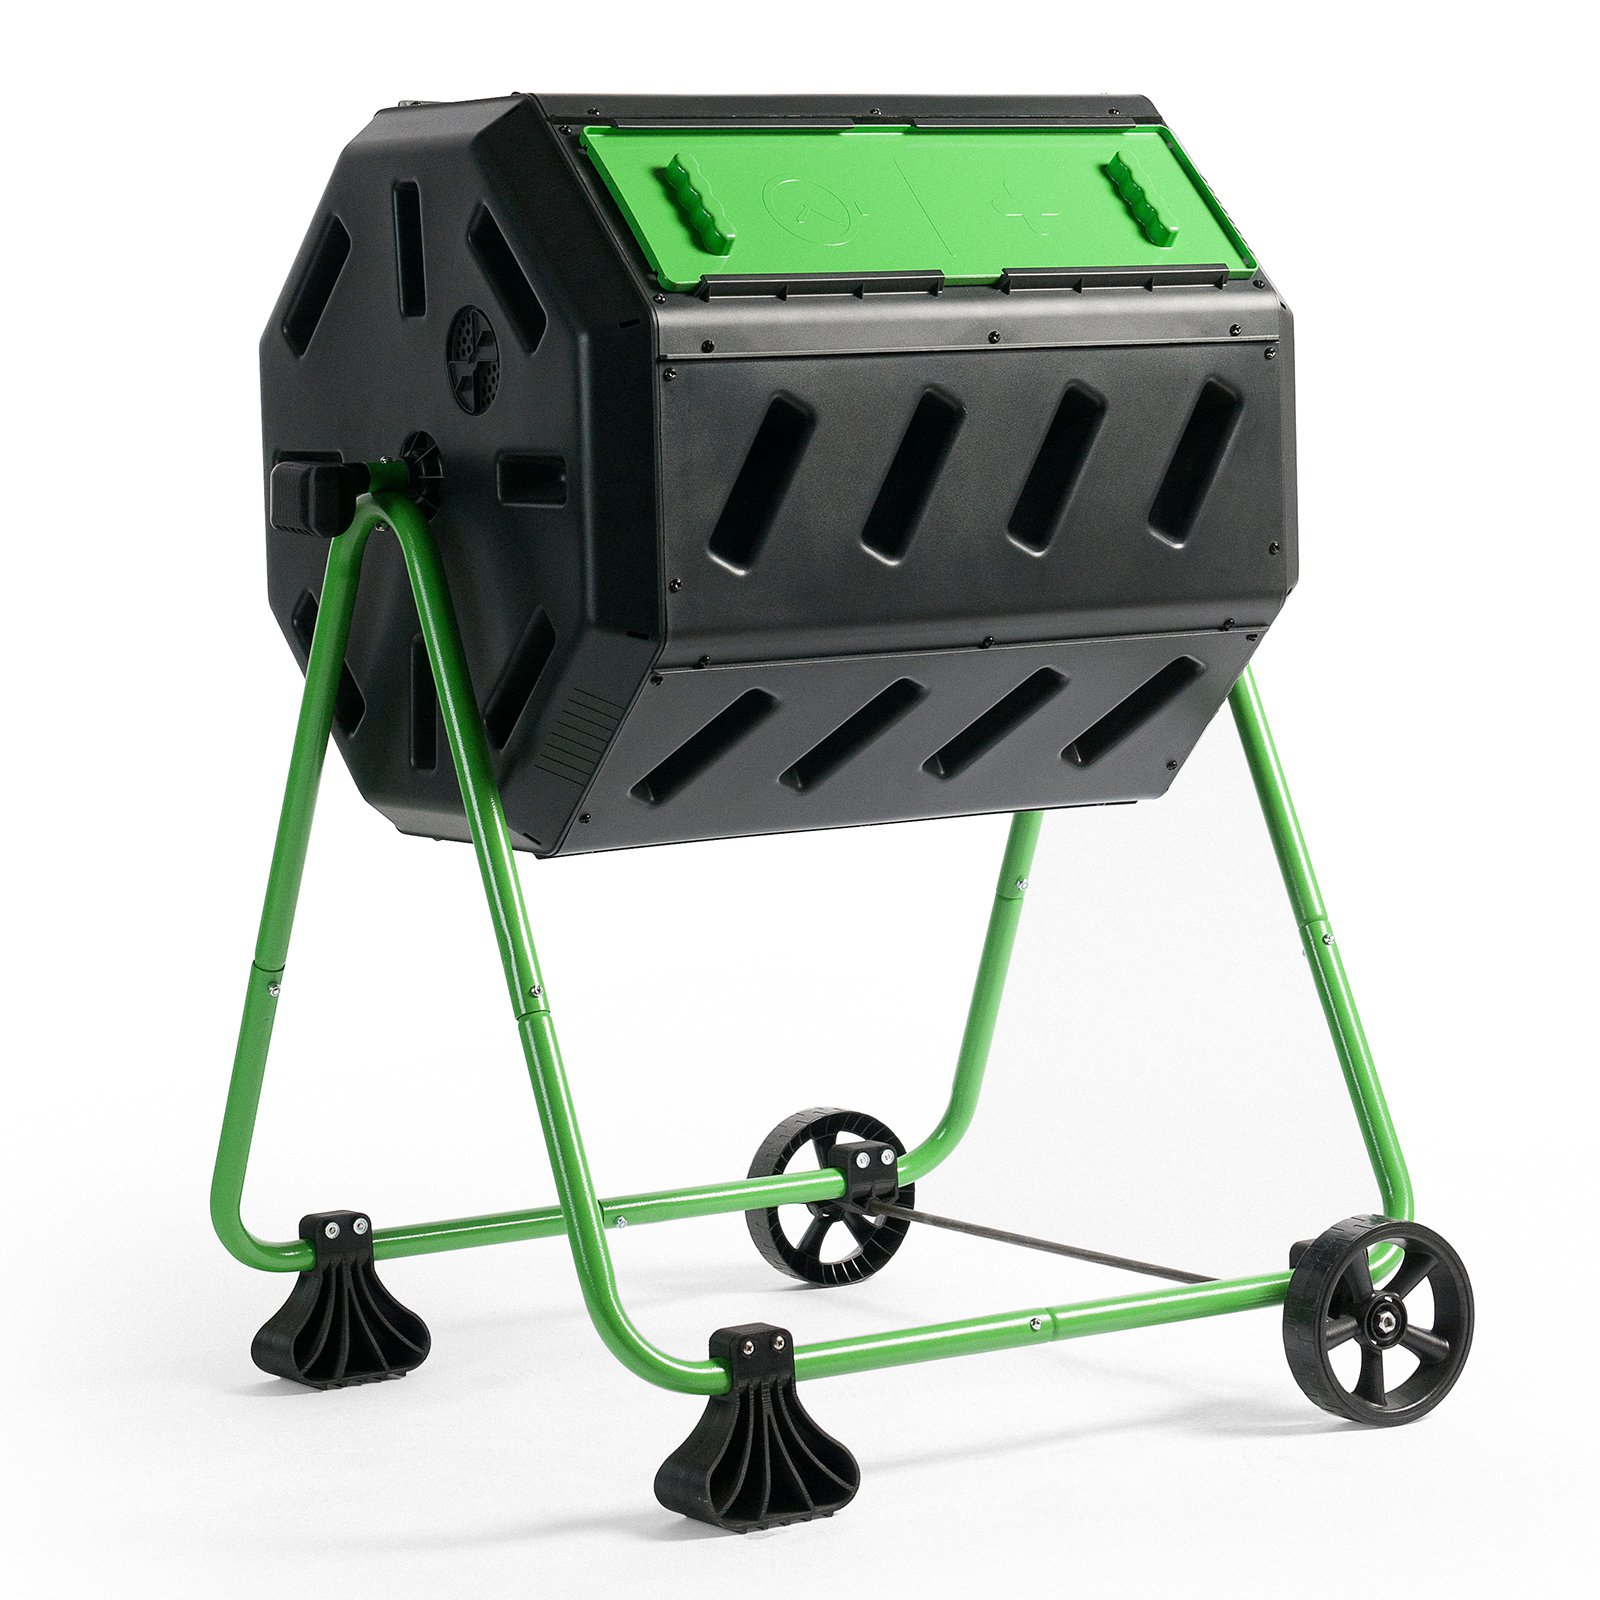 Hot Frog Mobile Dual-Chamber Compost Tumbler by Forest City Models and Patterns Ltd